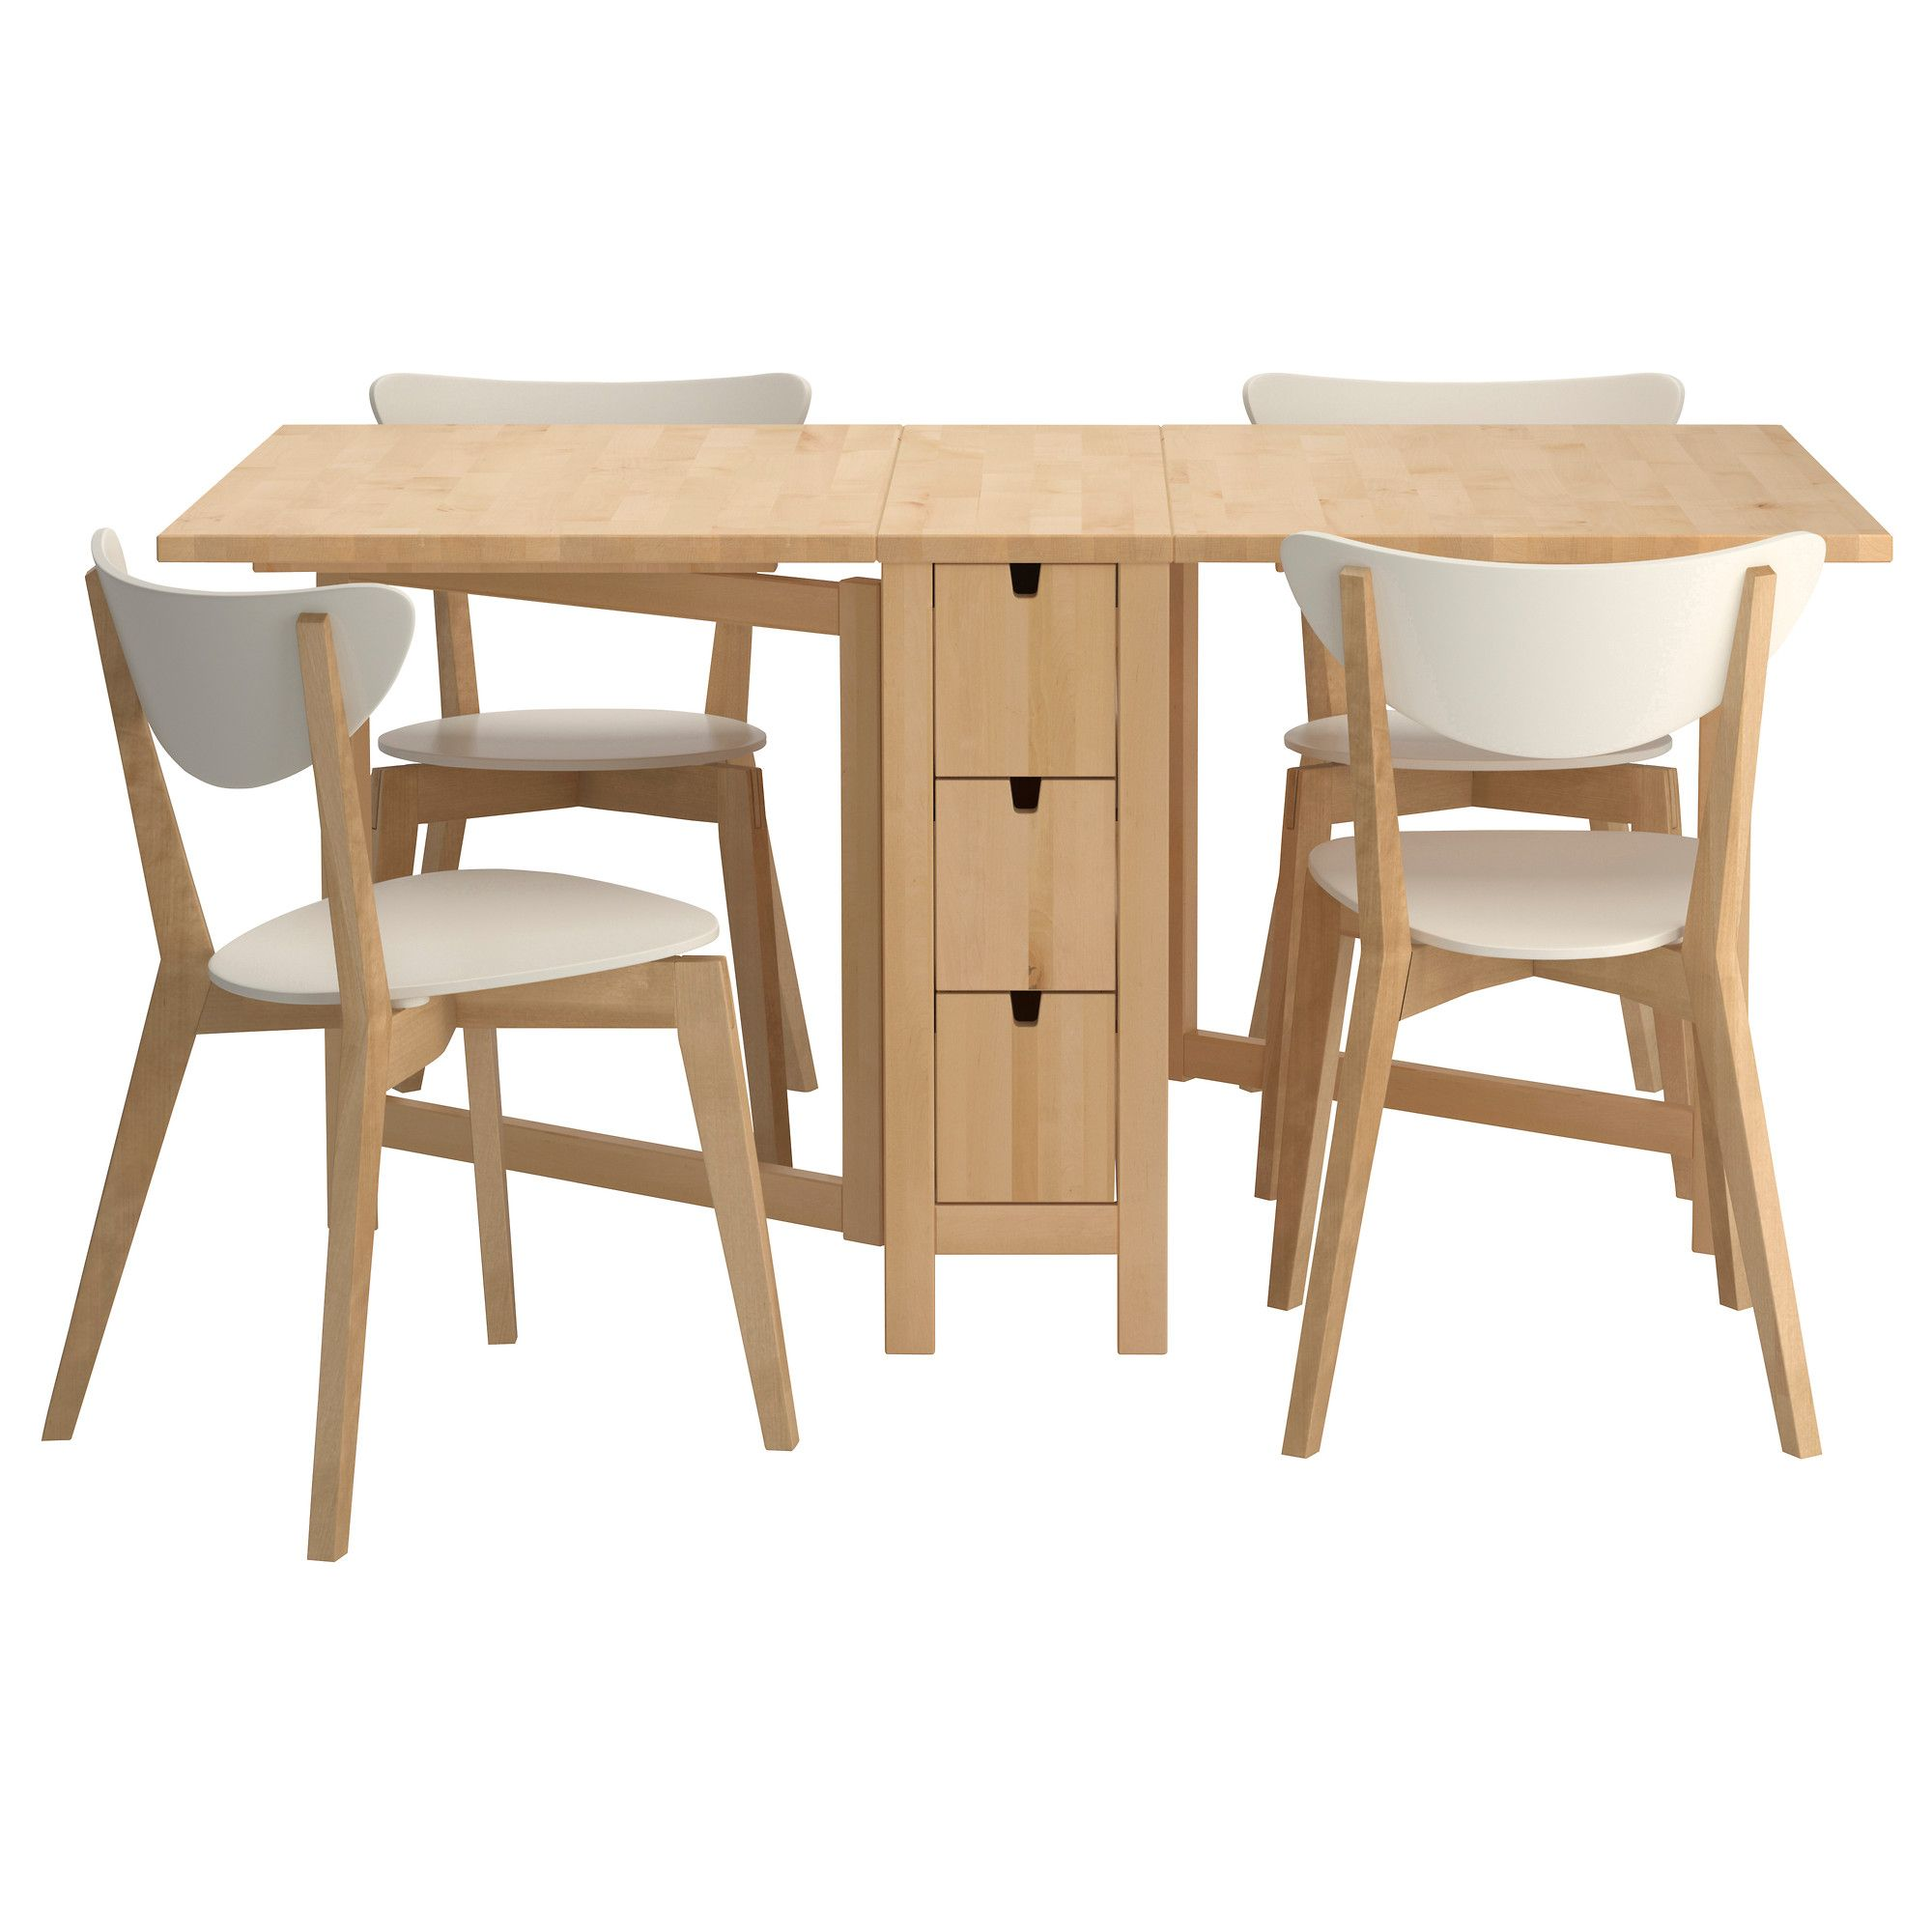 Norden nordmyra table and 4 chairs ikea for the love for Dining table table and chairs